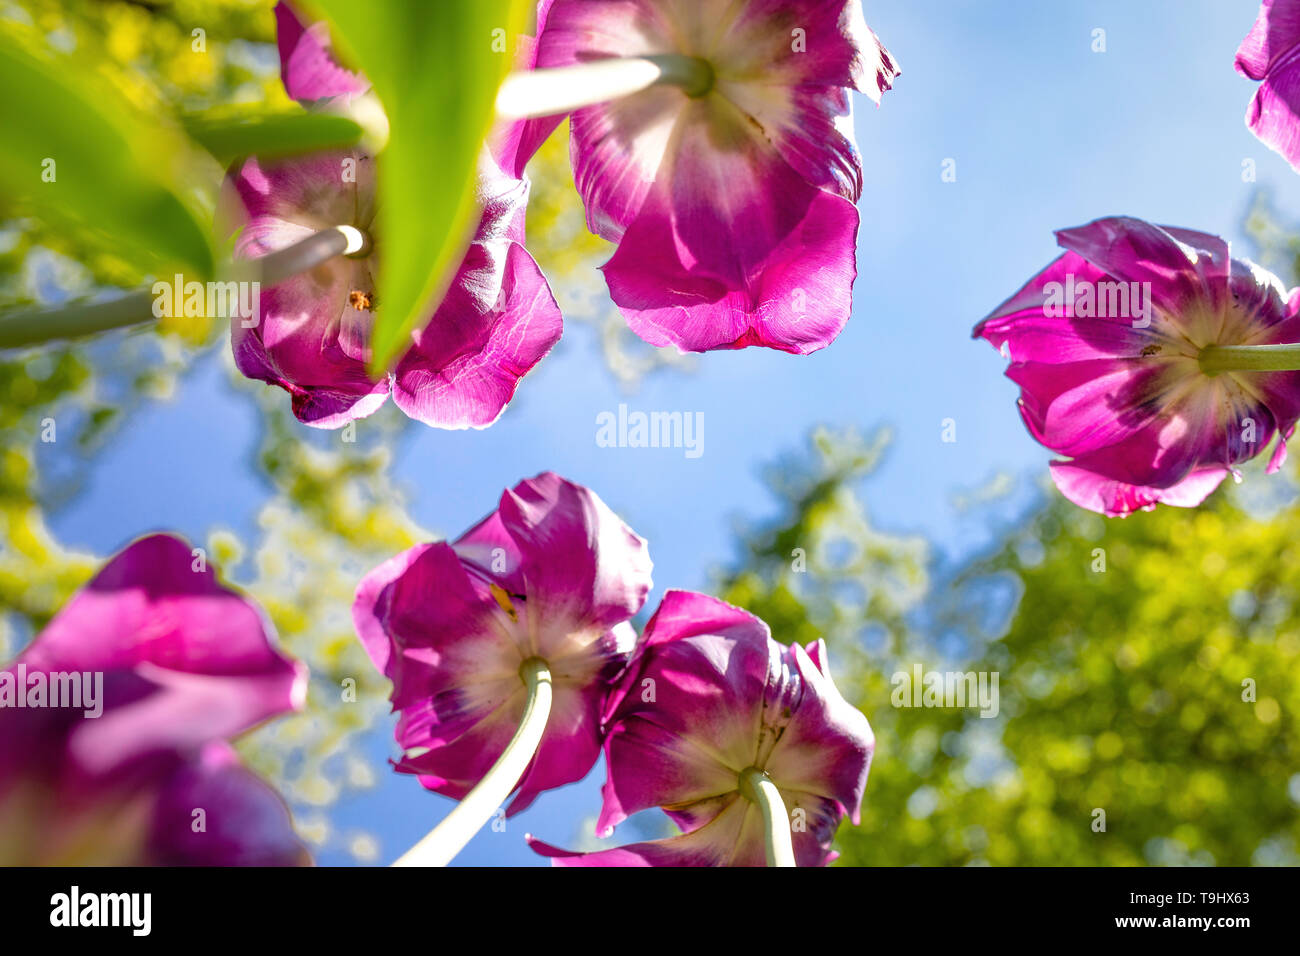 Purple tulips as seen from below, from underneath. - Stock Image